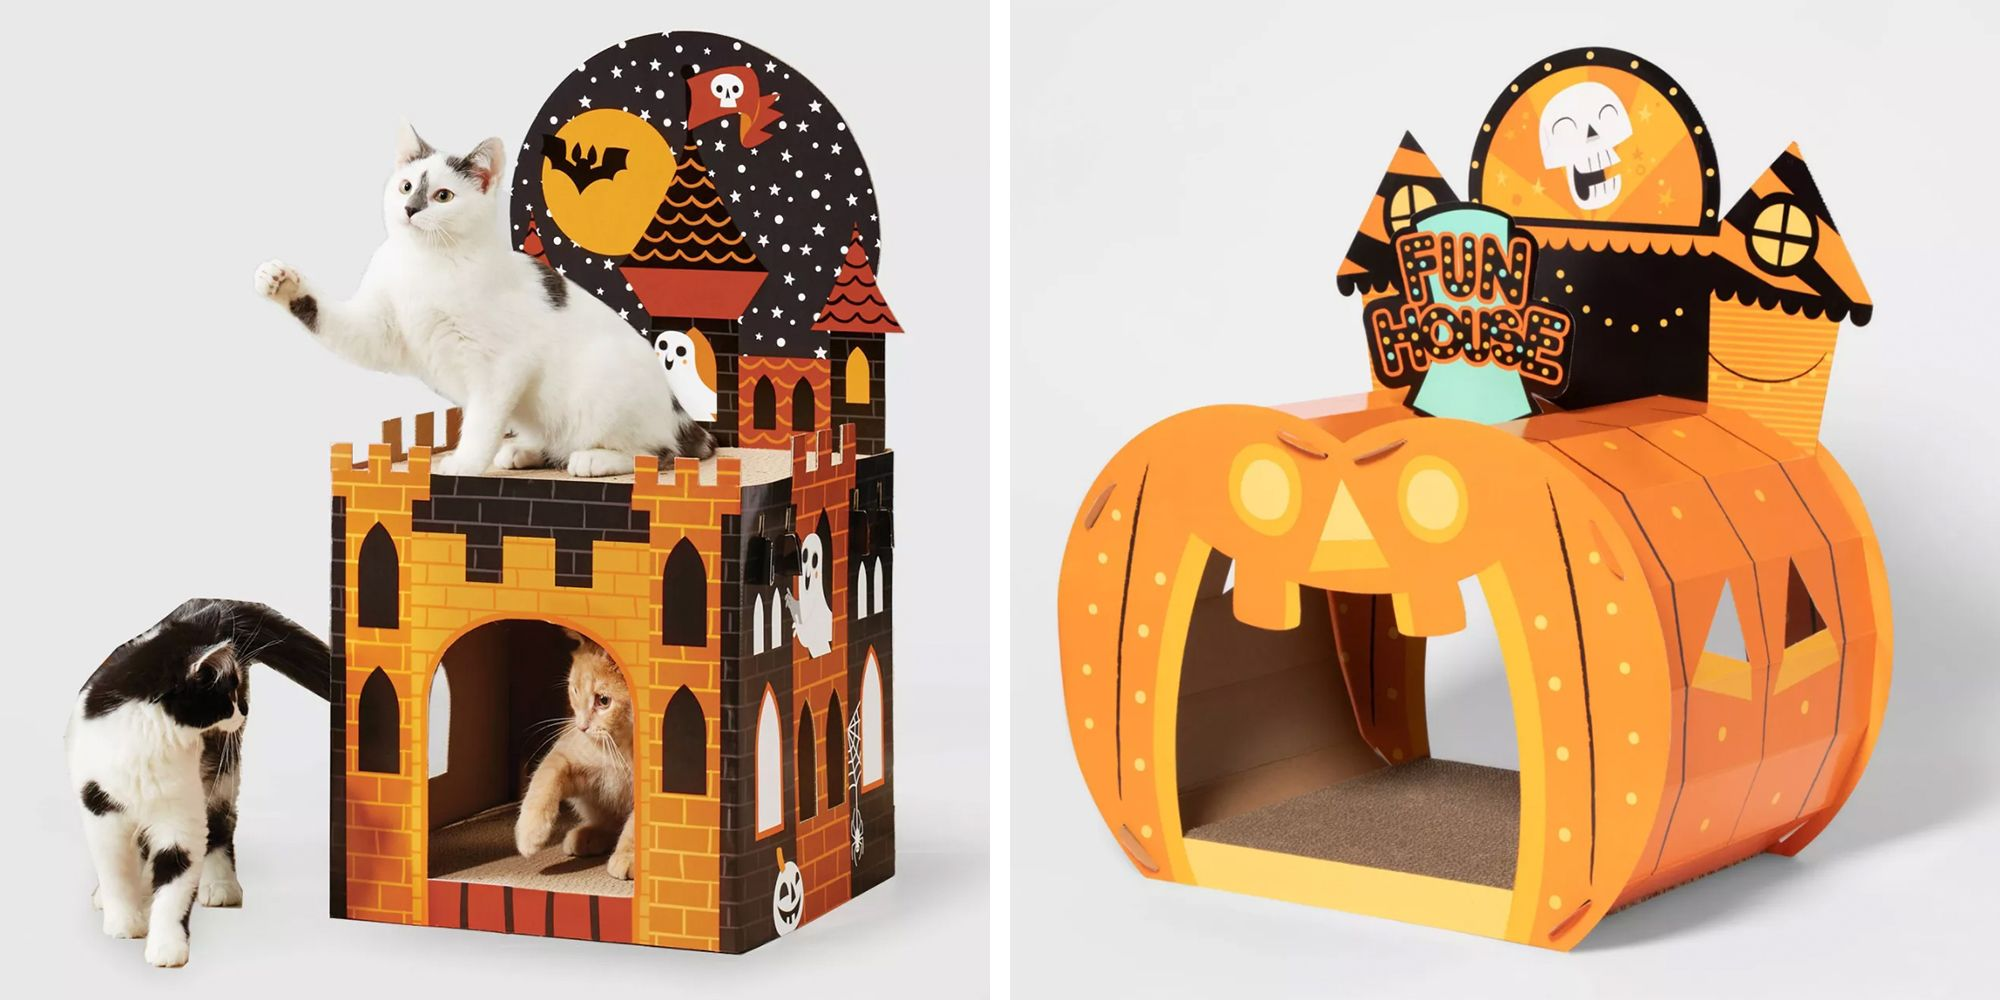 Halloween 2020 Houses Target Is Stocked With New Halloween Cat Houses That Bring the